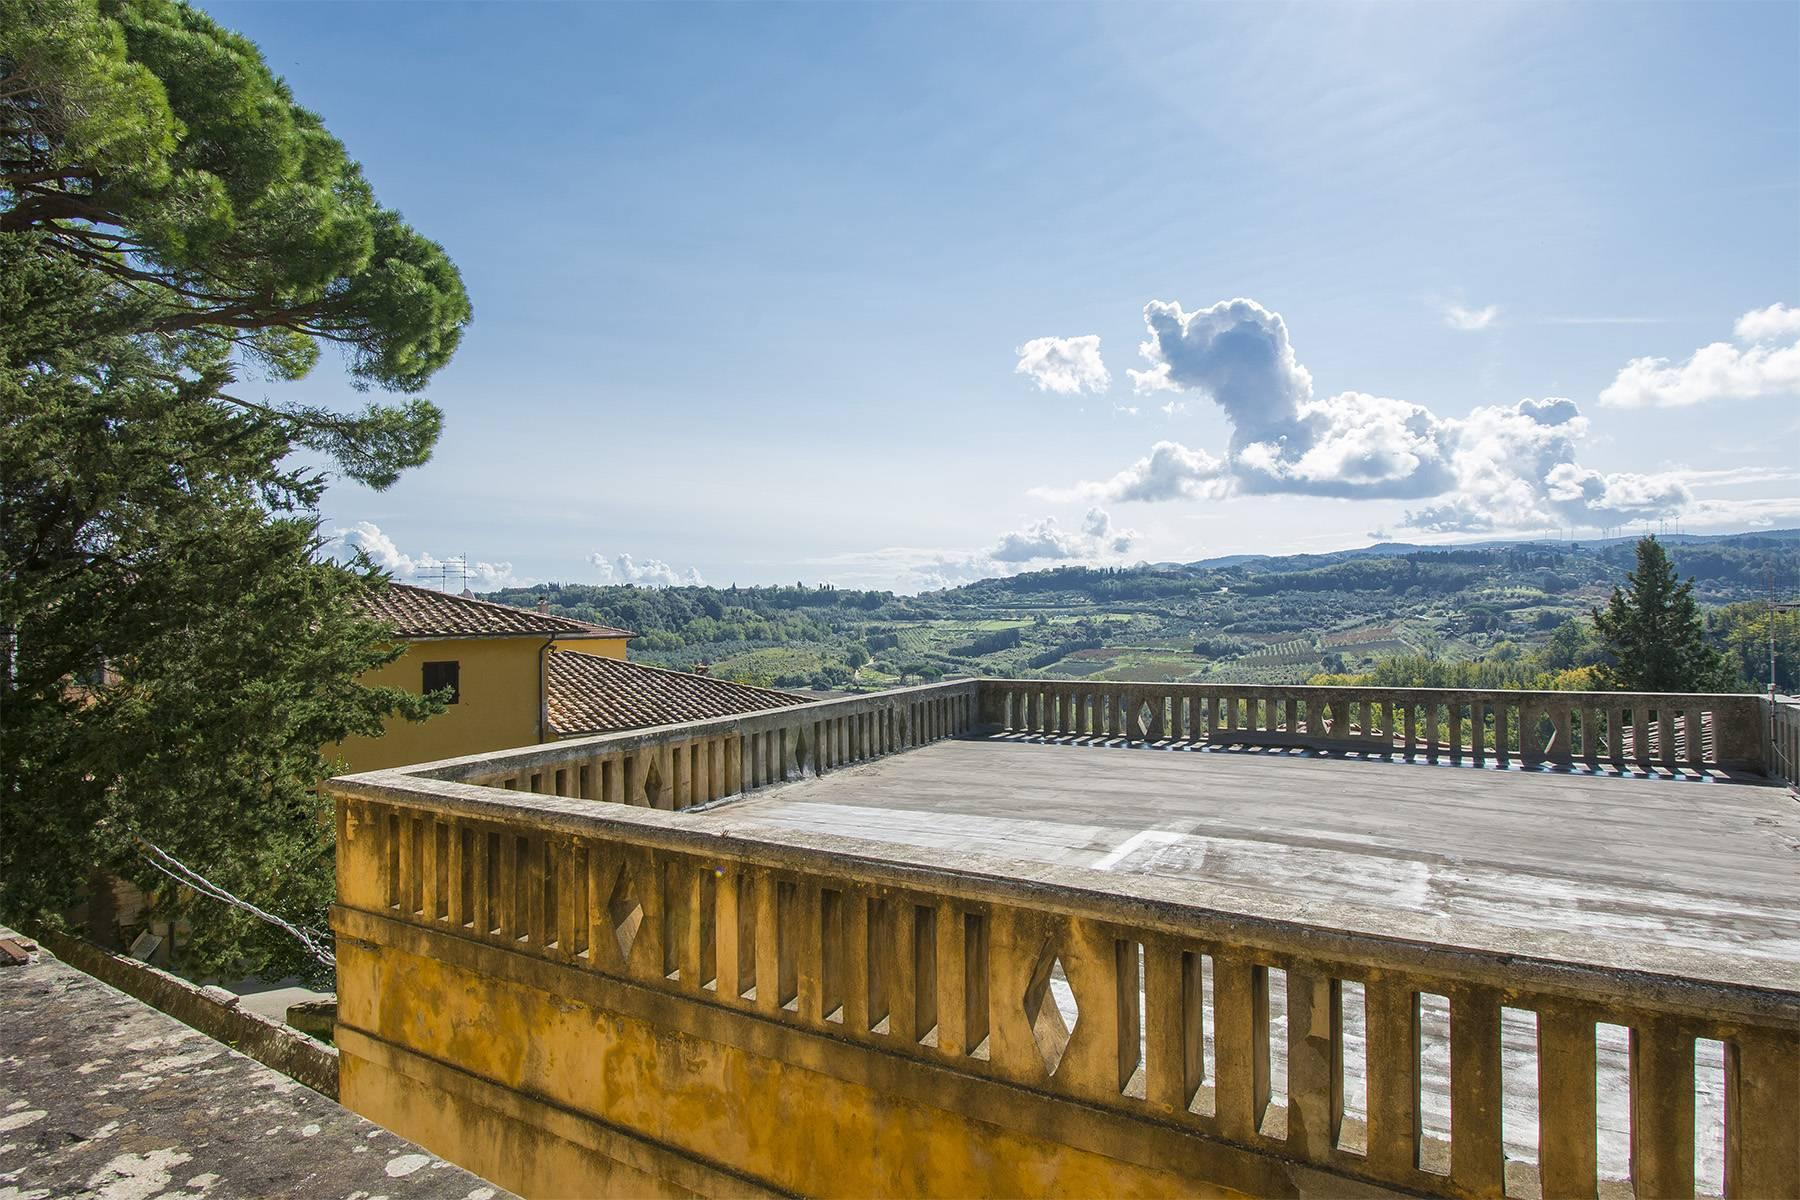 Charming Medicean Villa on the Tuscan hills - 40